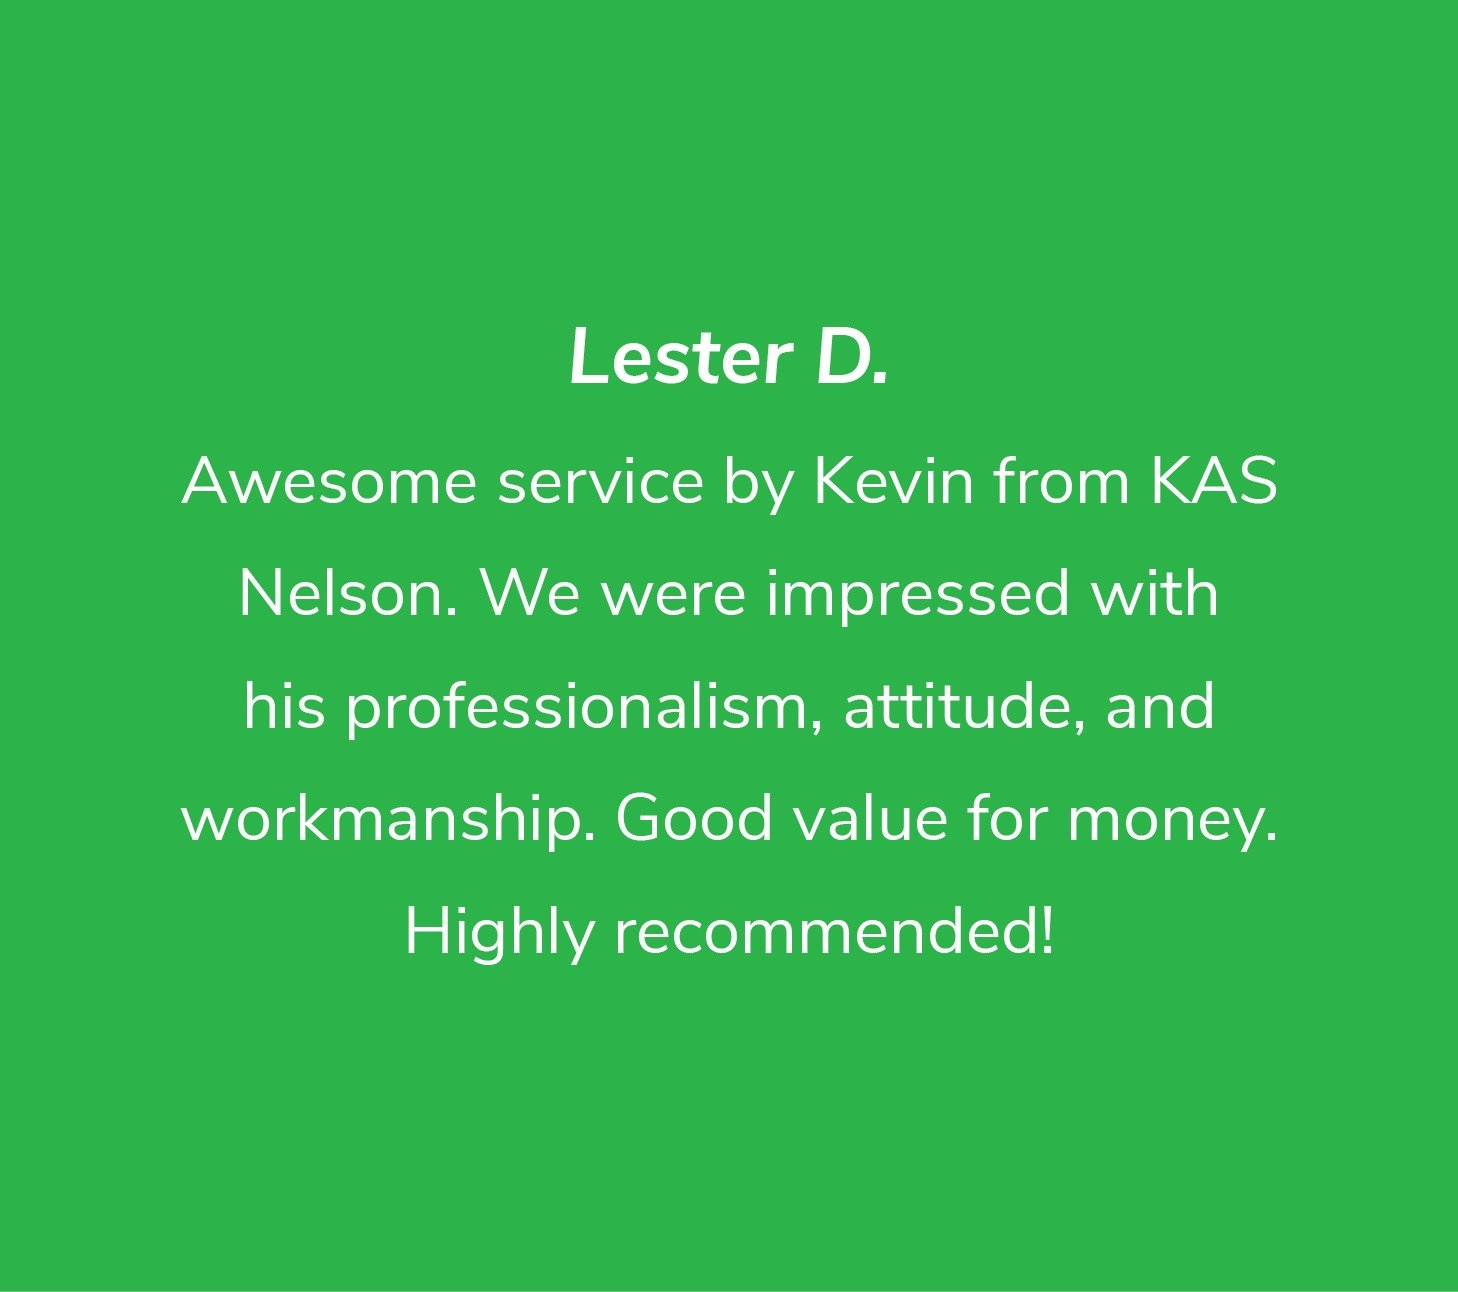 Customer review from Lester D